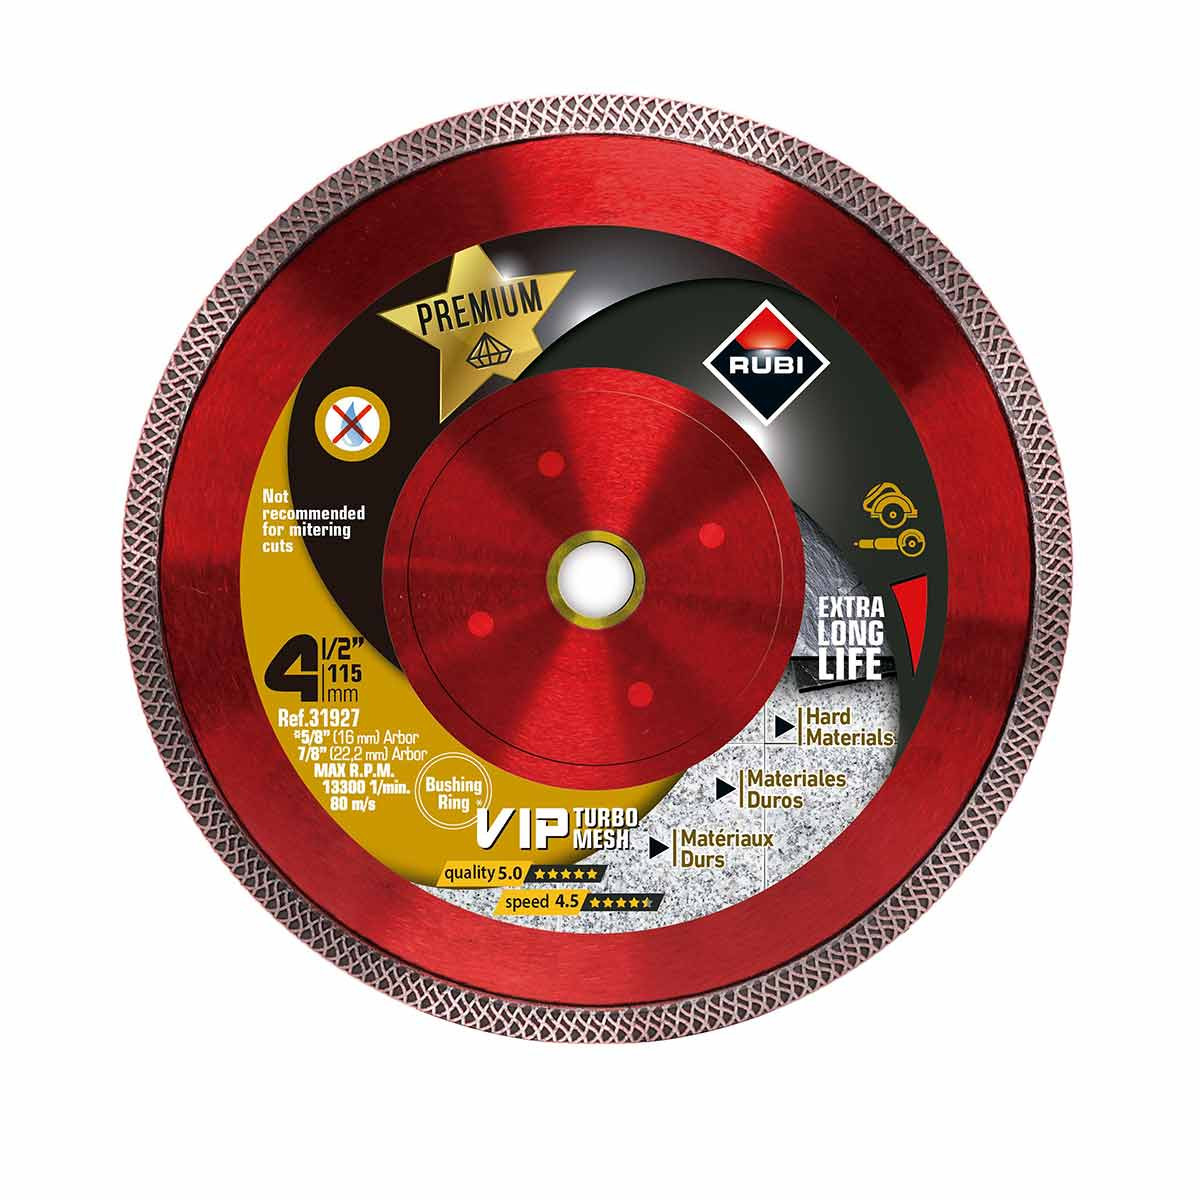 rubi viper 4 1/2in diamond blade